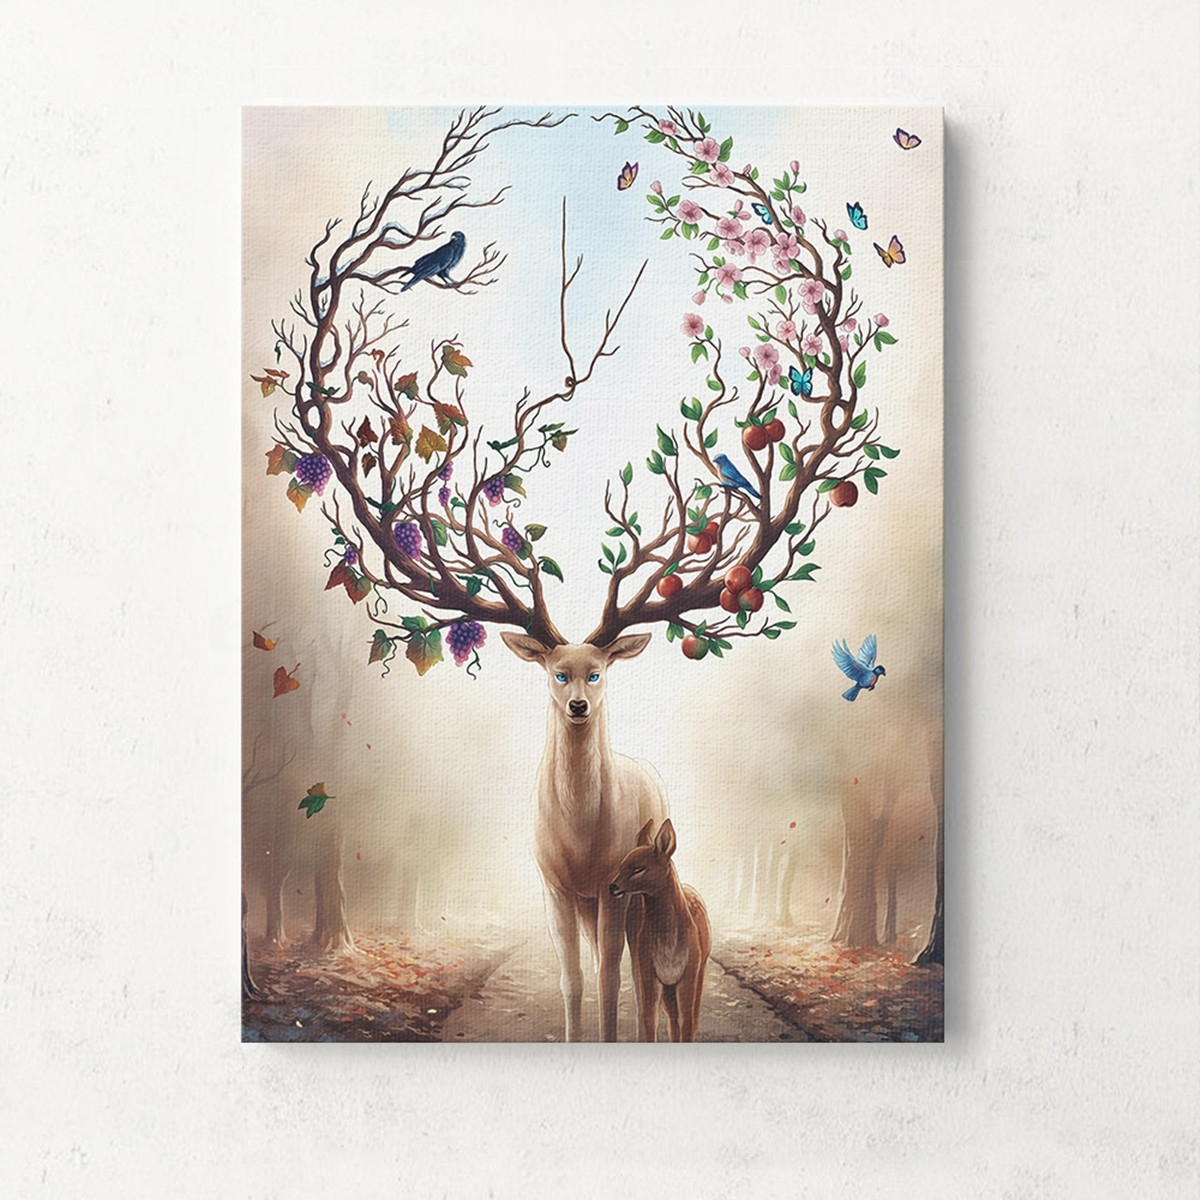 Unframed Canvas Print Deer Design Modern Home Decor Wall Art In Most Current Deer Canvas Wall Art (View 4 of 15)